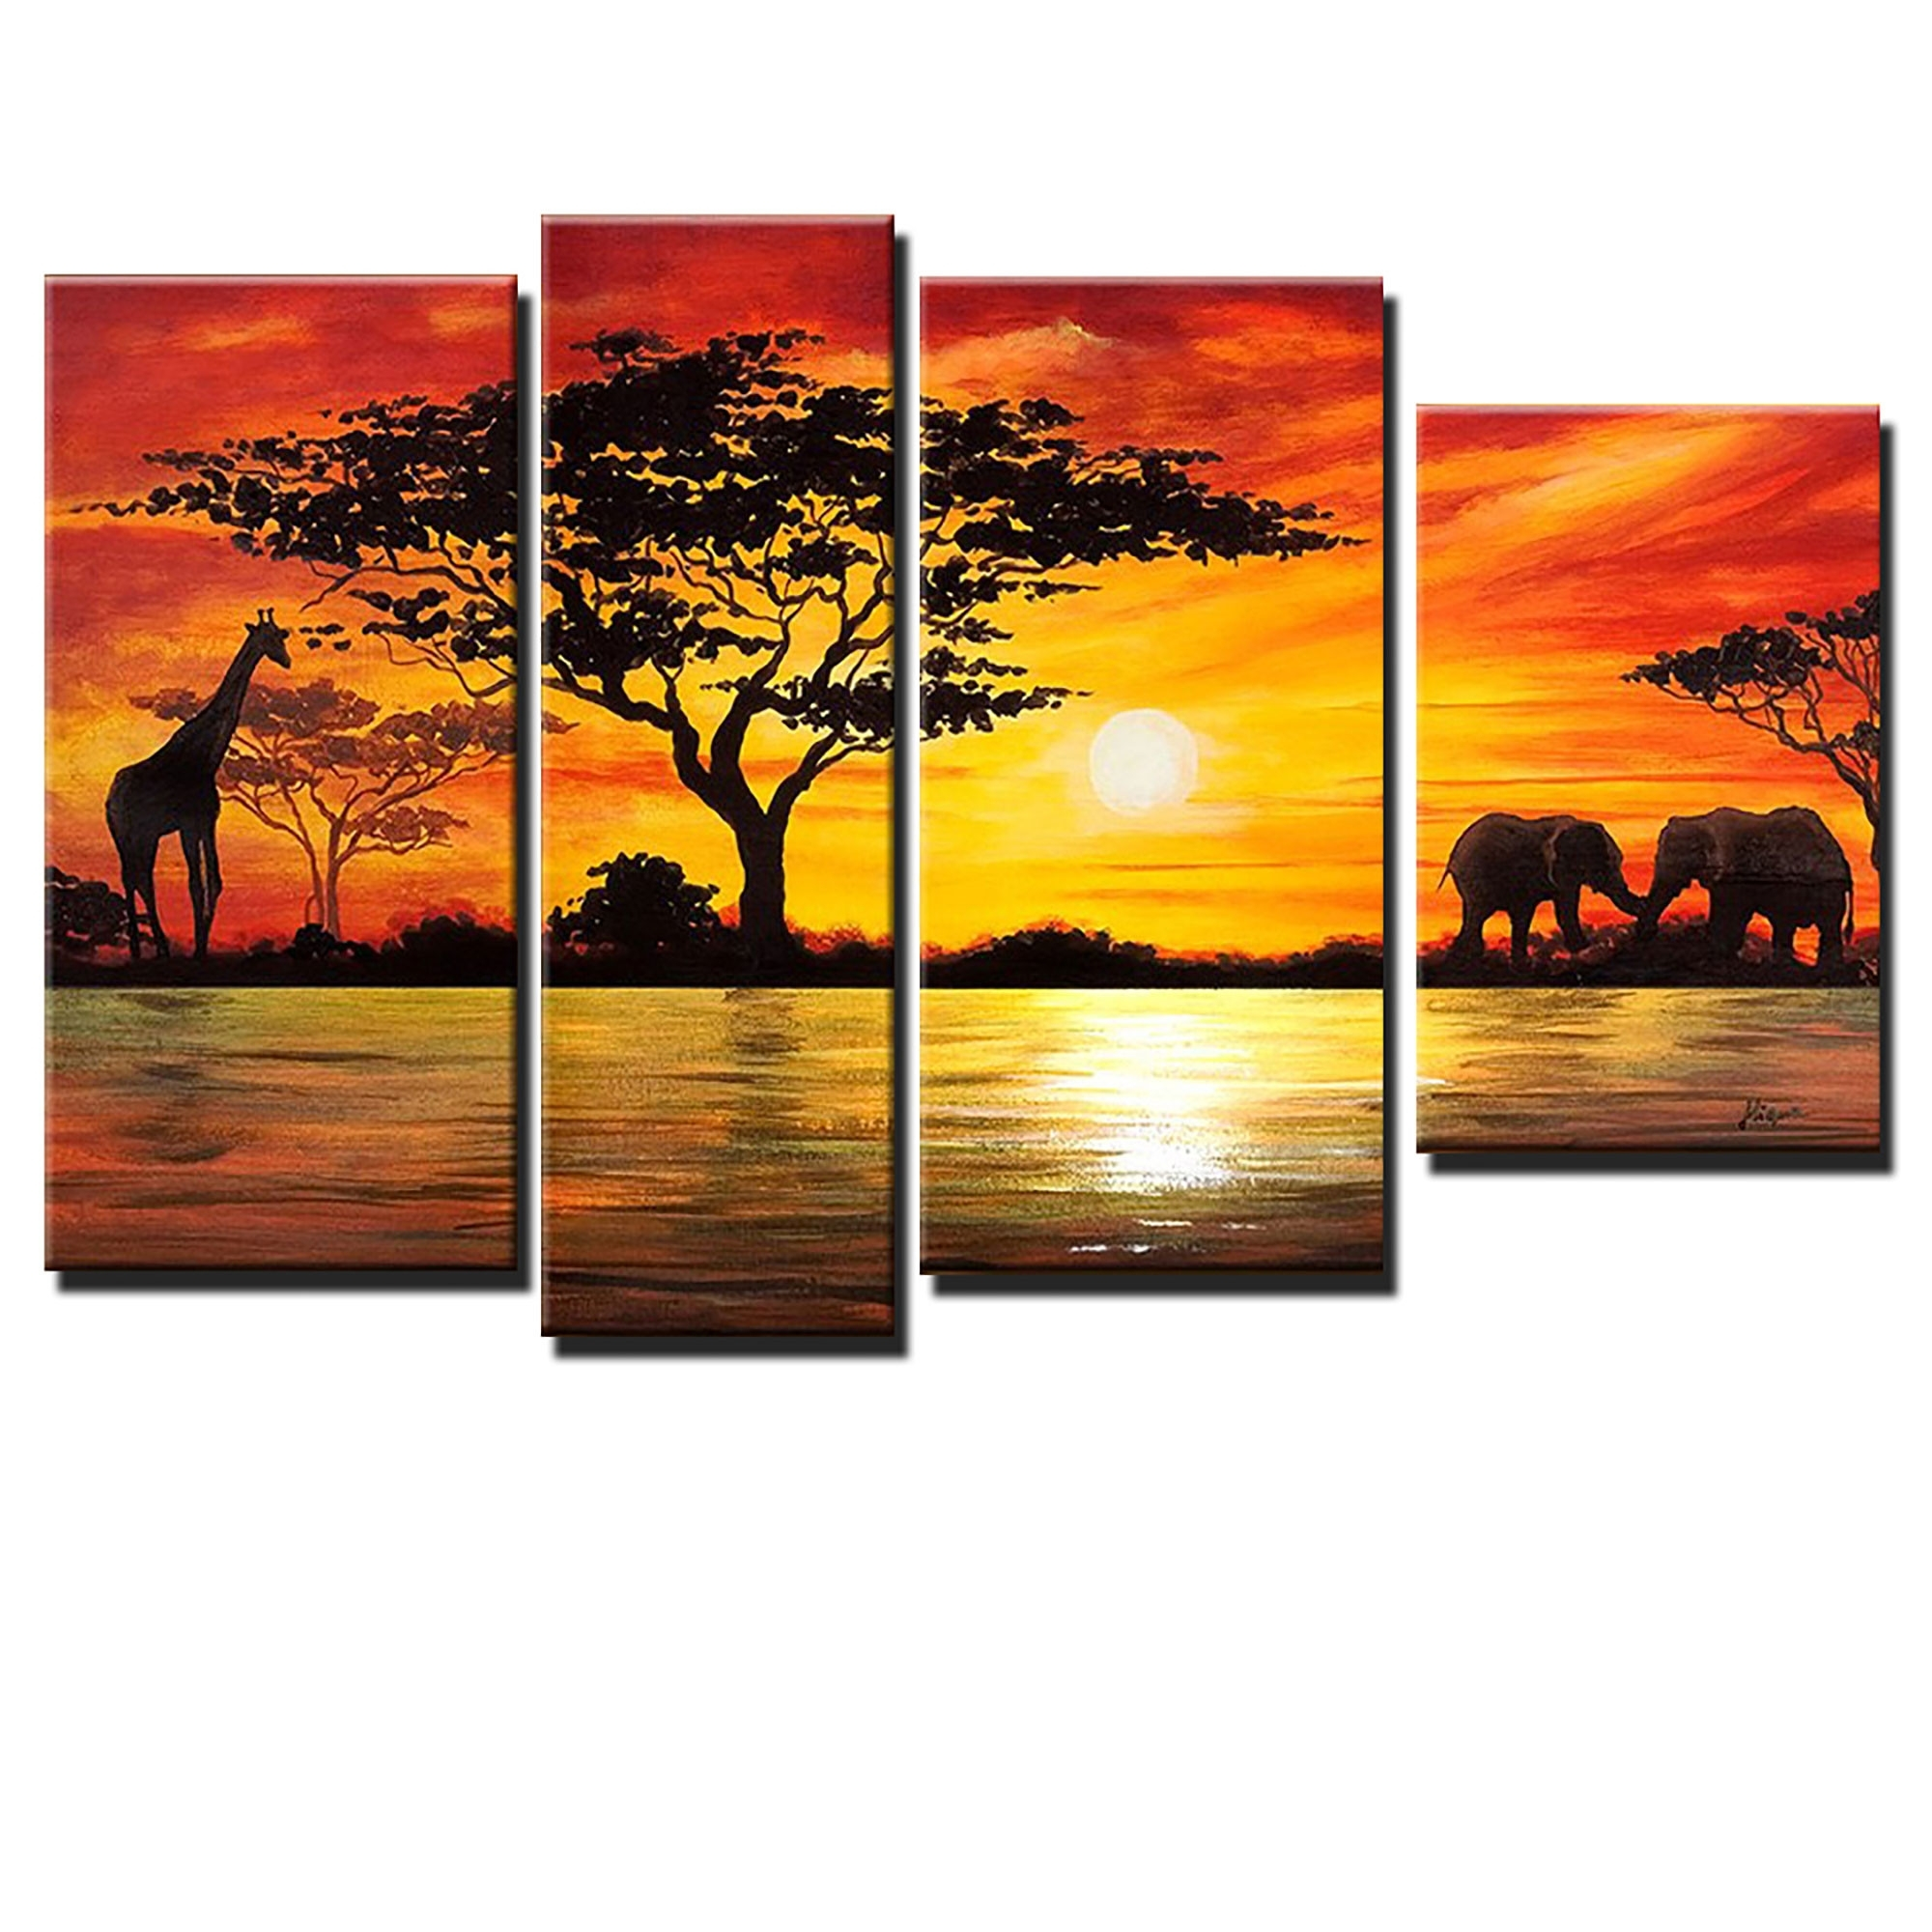 Beauty Of Africa Landscape Canvas Wall Art Oil Painting | Lovely With Regard To Recent Landscape Canvas Wall Art (View 9 of 15)